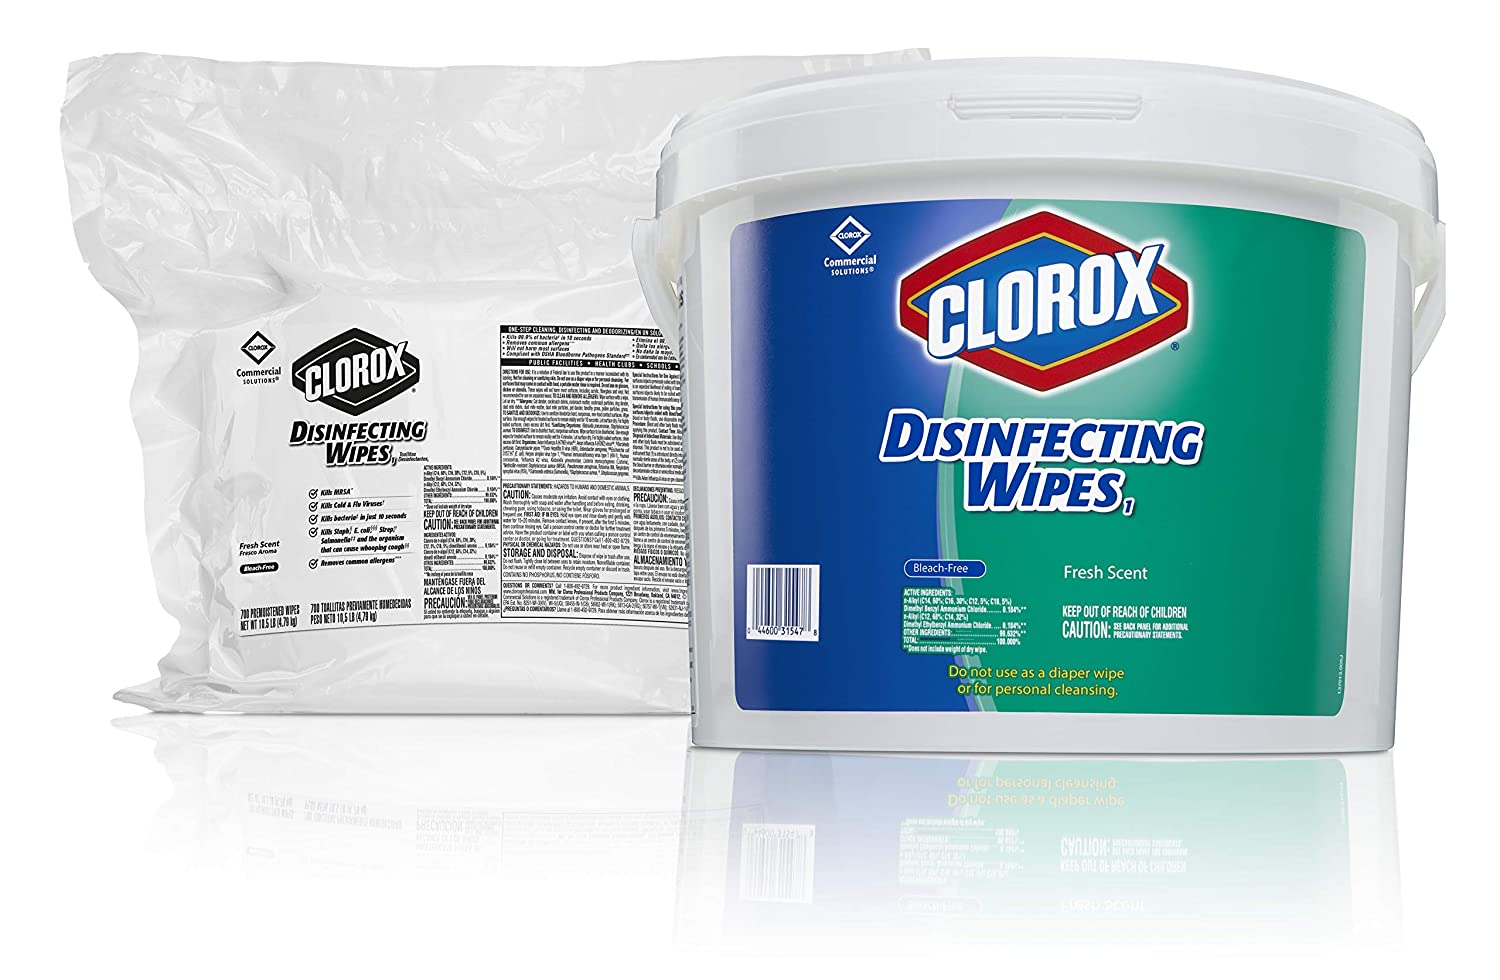 Clorox Commercial Solutions Disinfecting Wipes, Fresh Scent, 700 Count (Pack of 2) (31428)